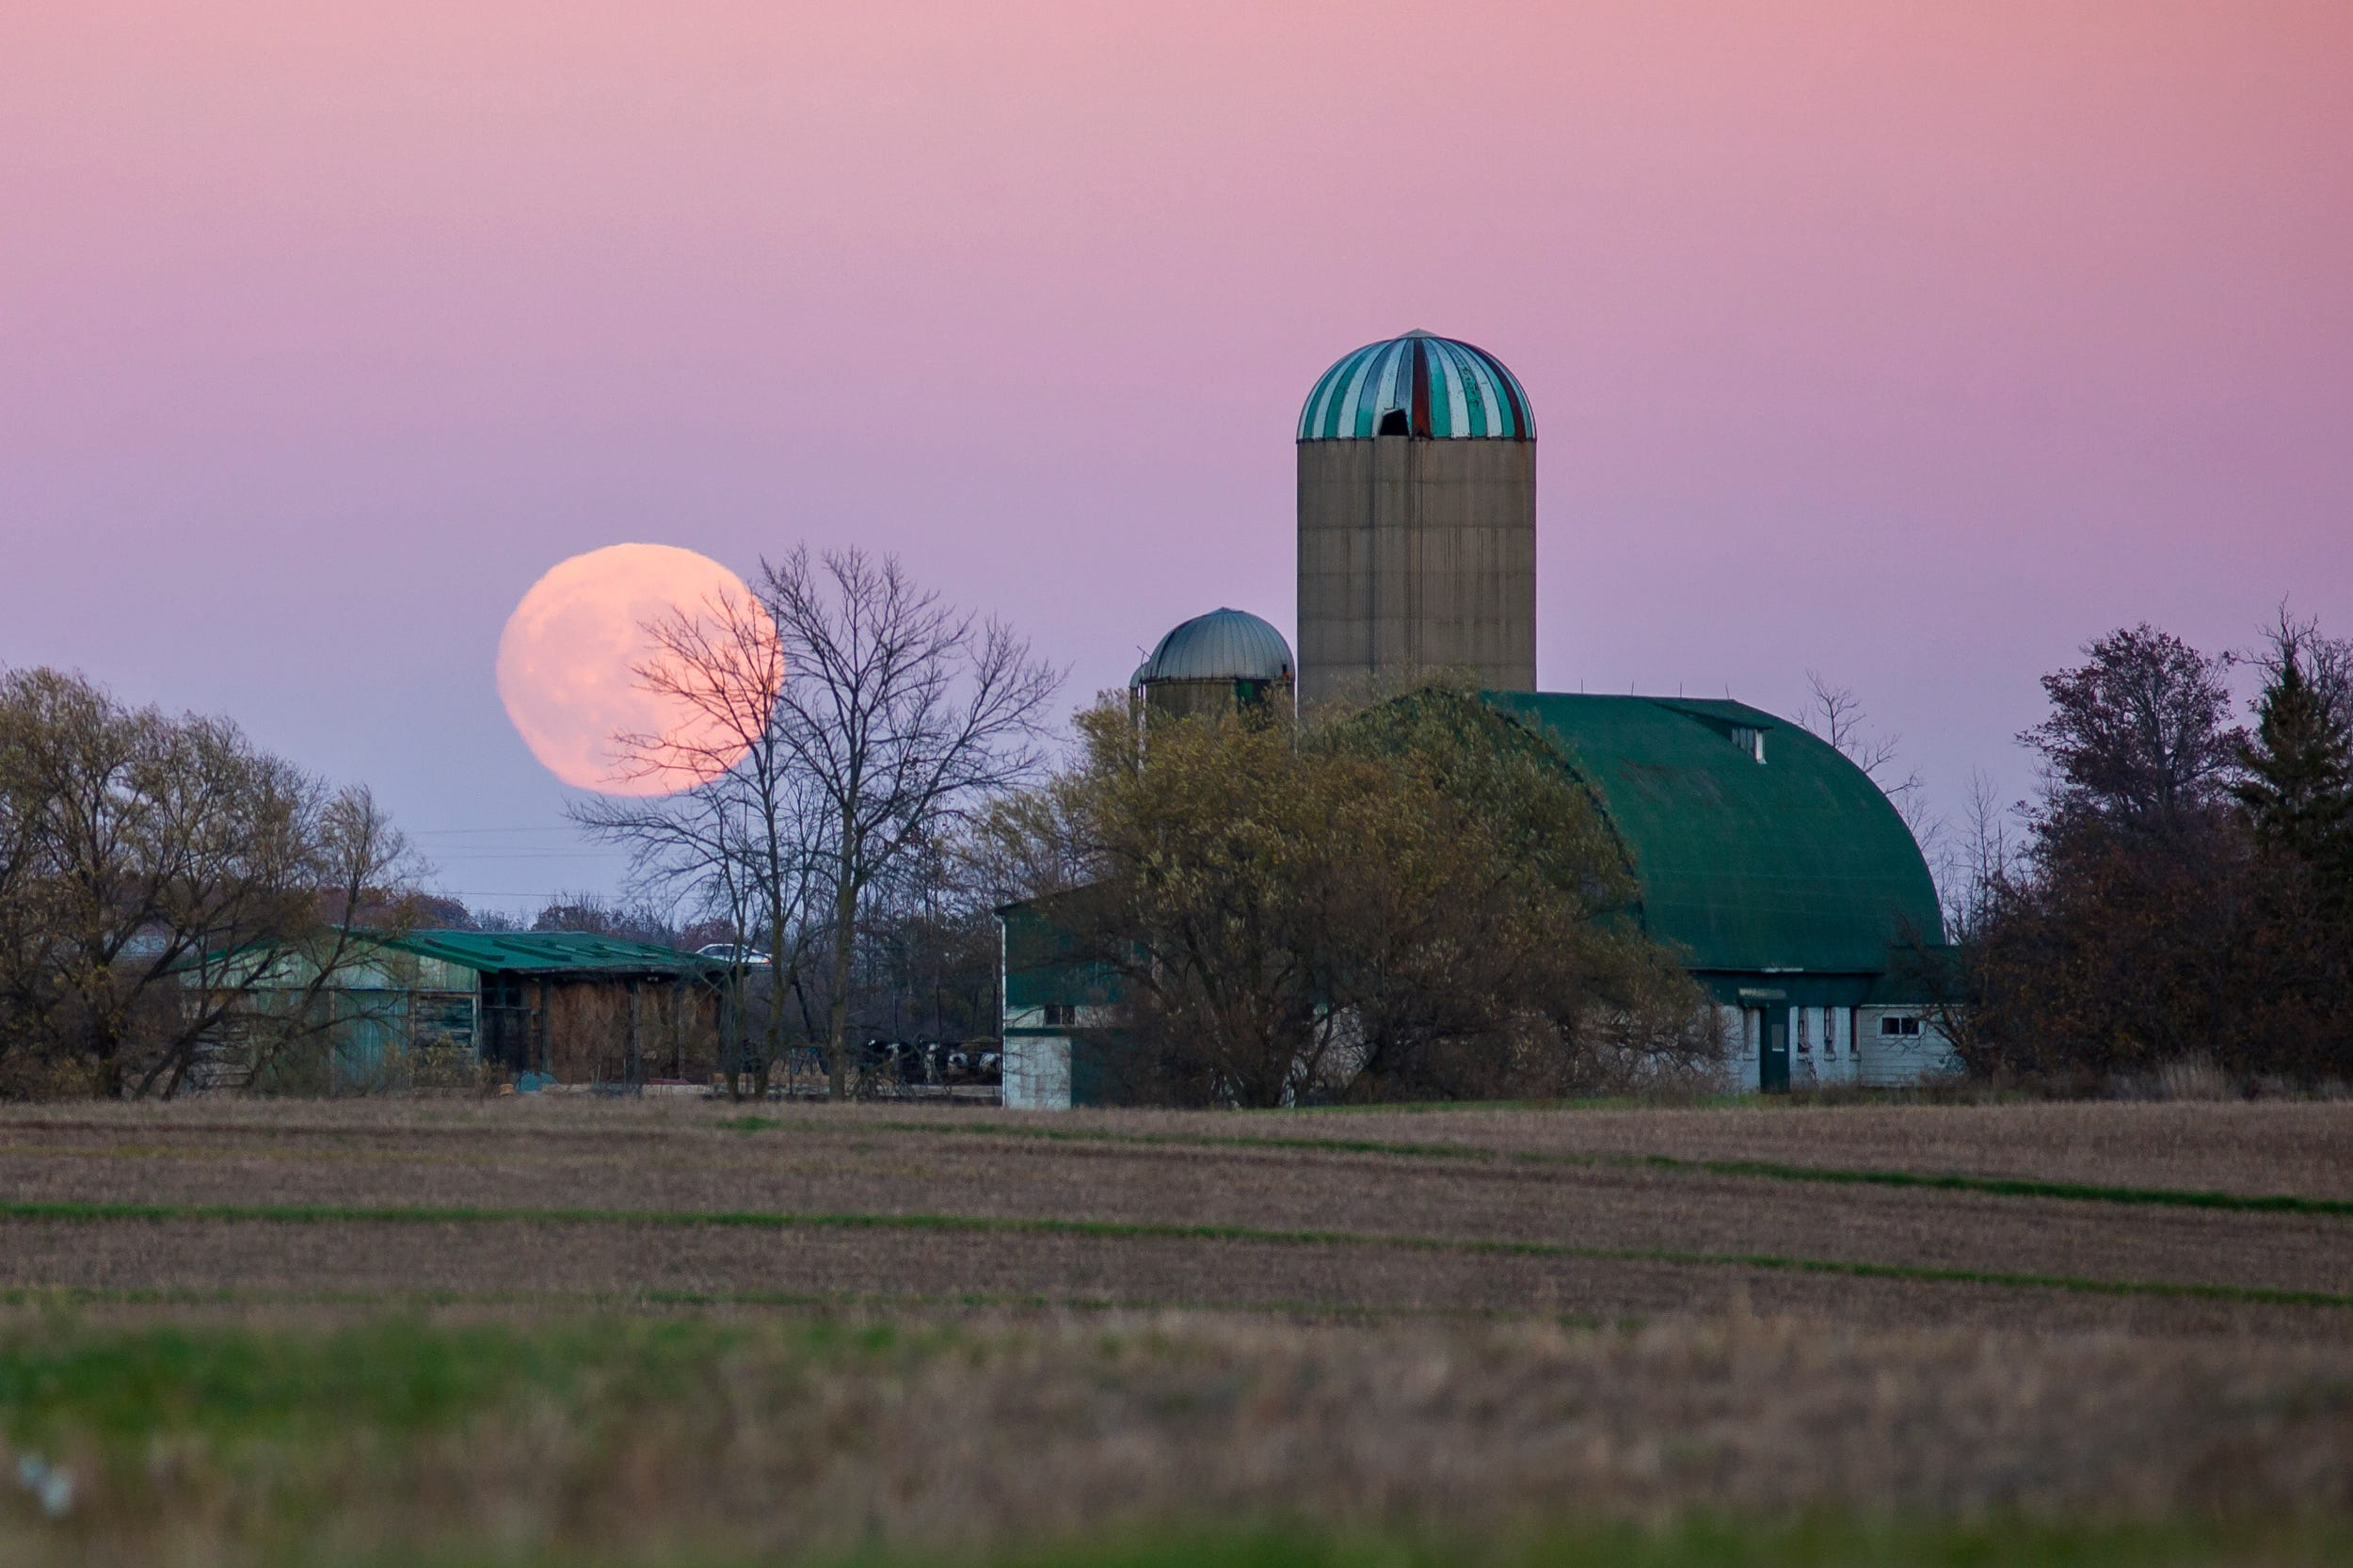 When to see the 'Full Pink Moon,' the biggest and brightest supermoon of the year - AZCentral